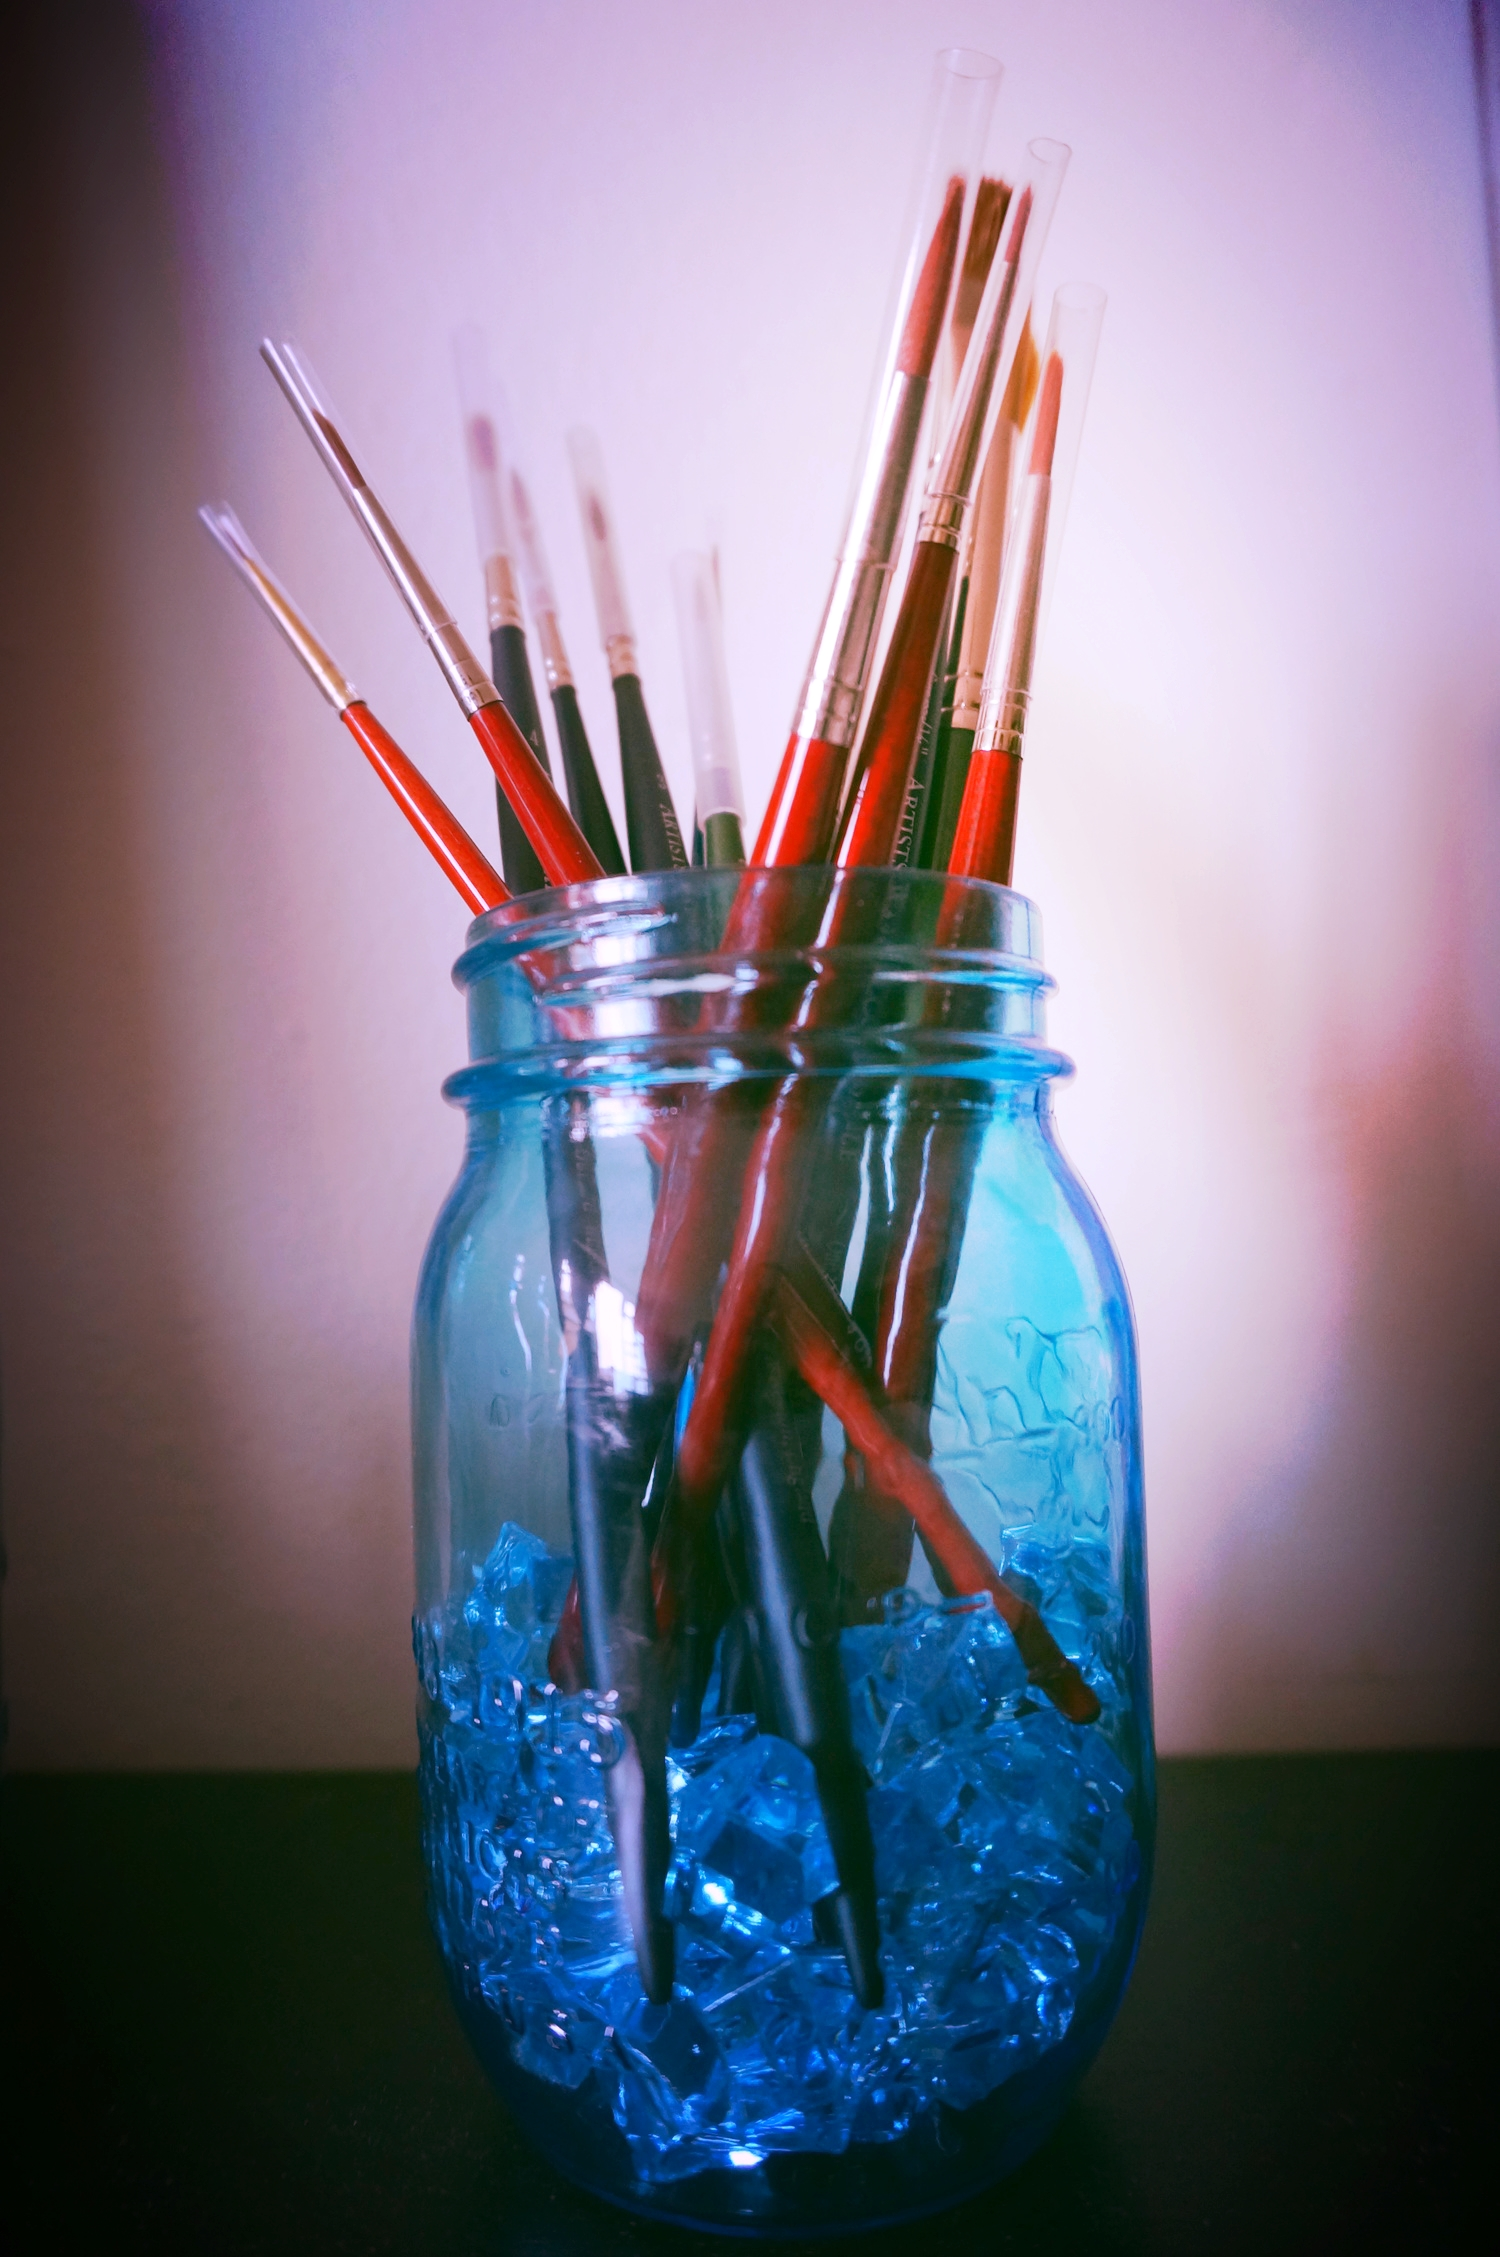 I store my brushes upright in a blue tinted mason jar